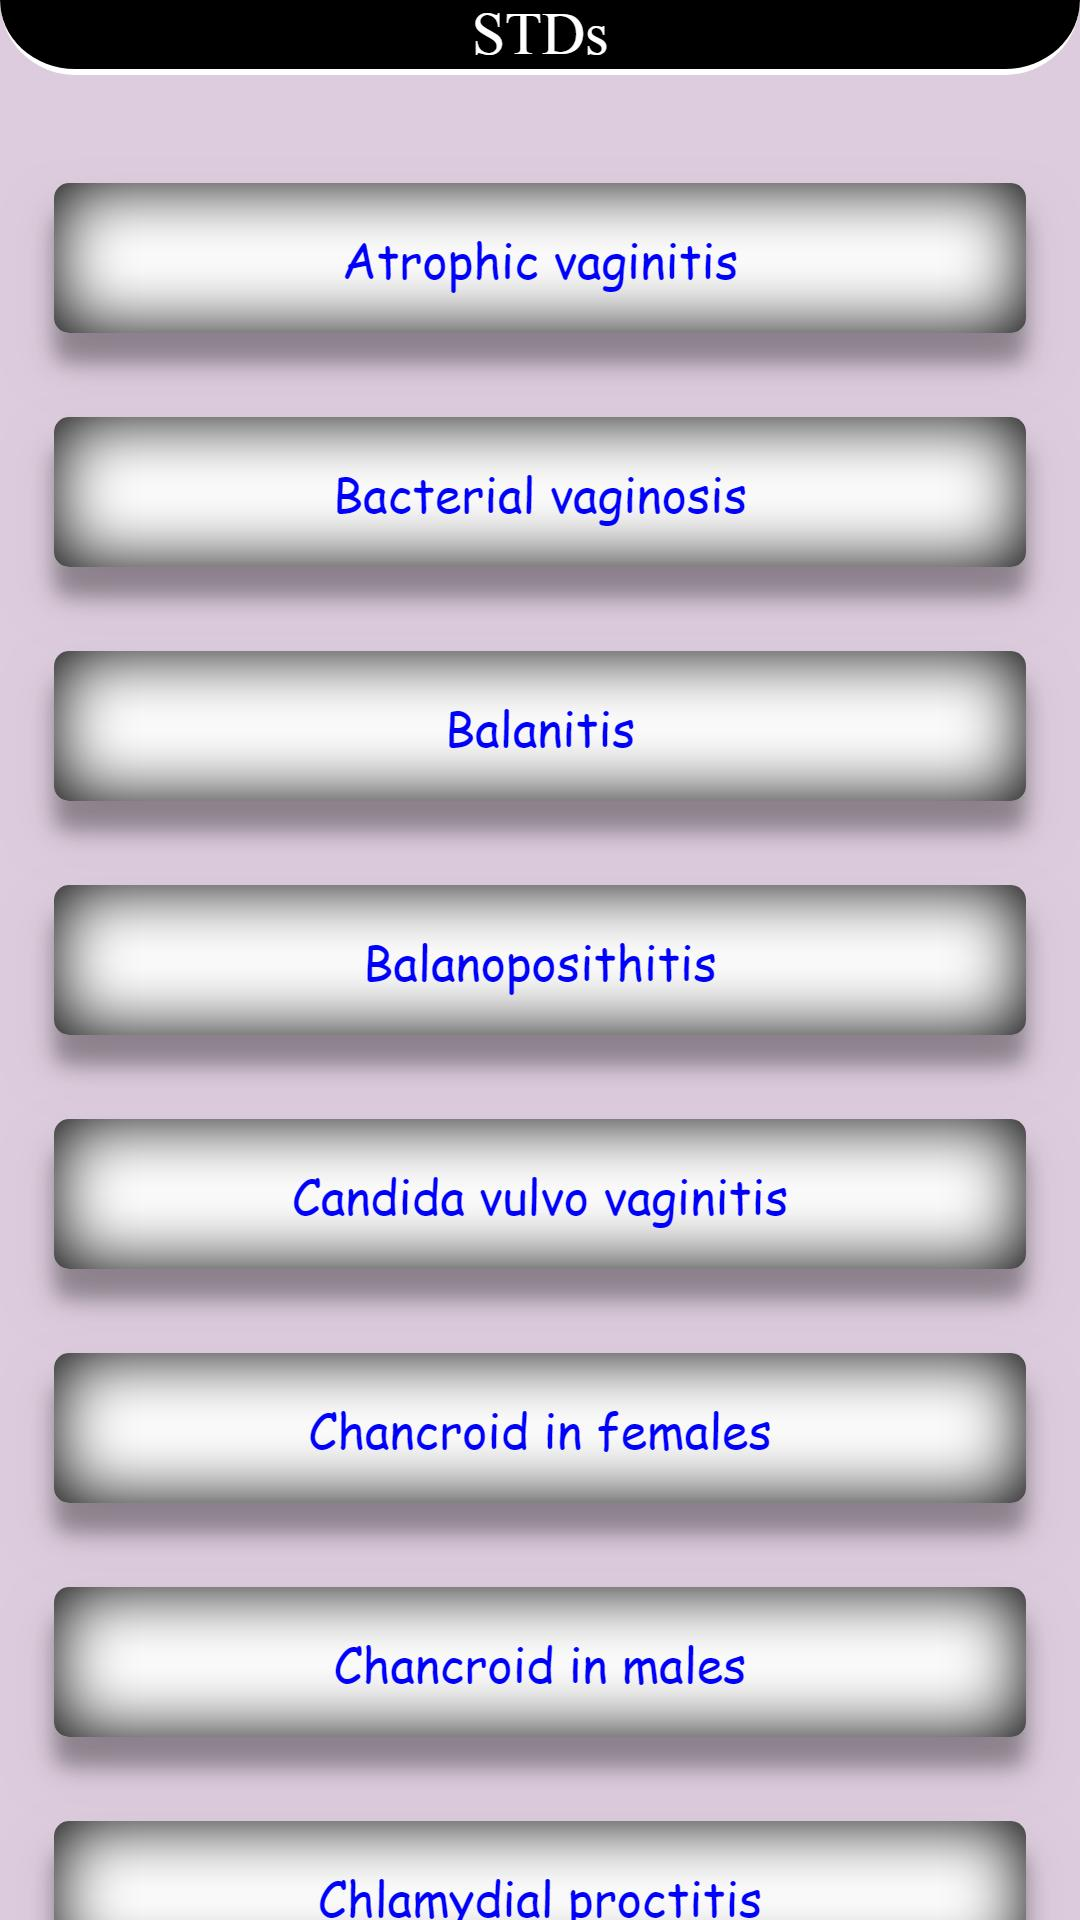 STDs Sexually Transmitted Diseases for Android - APK Download